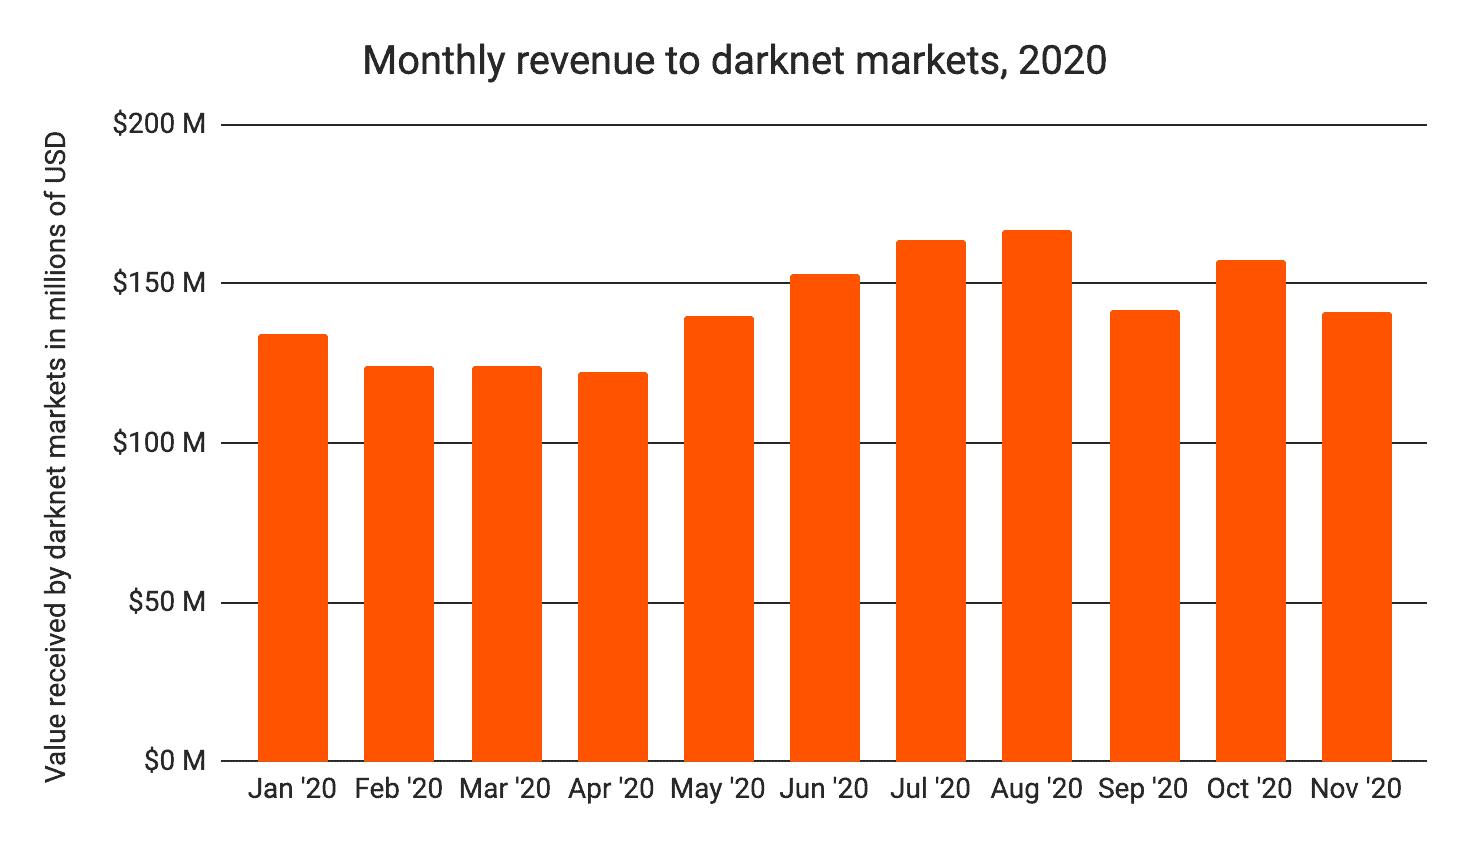 Monthly Crypto Revenue In Darknet Markets. Source: Chainalysis